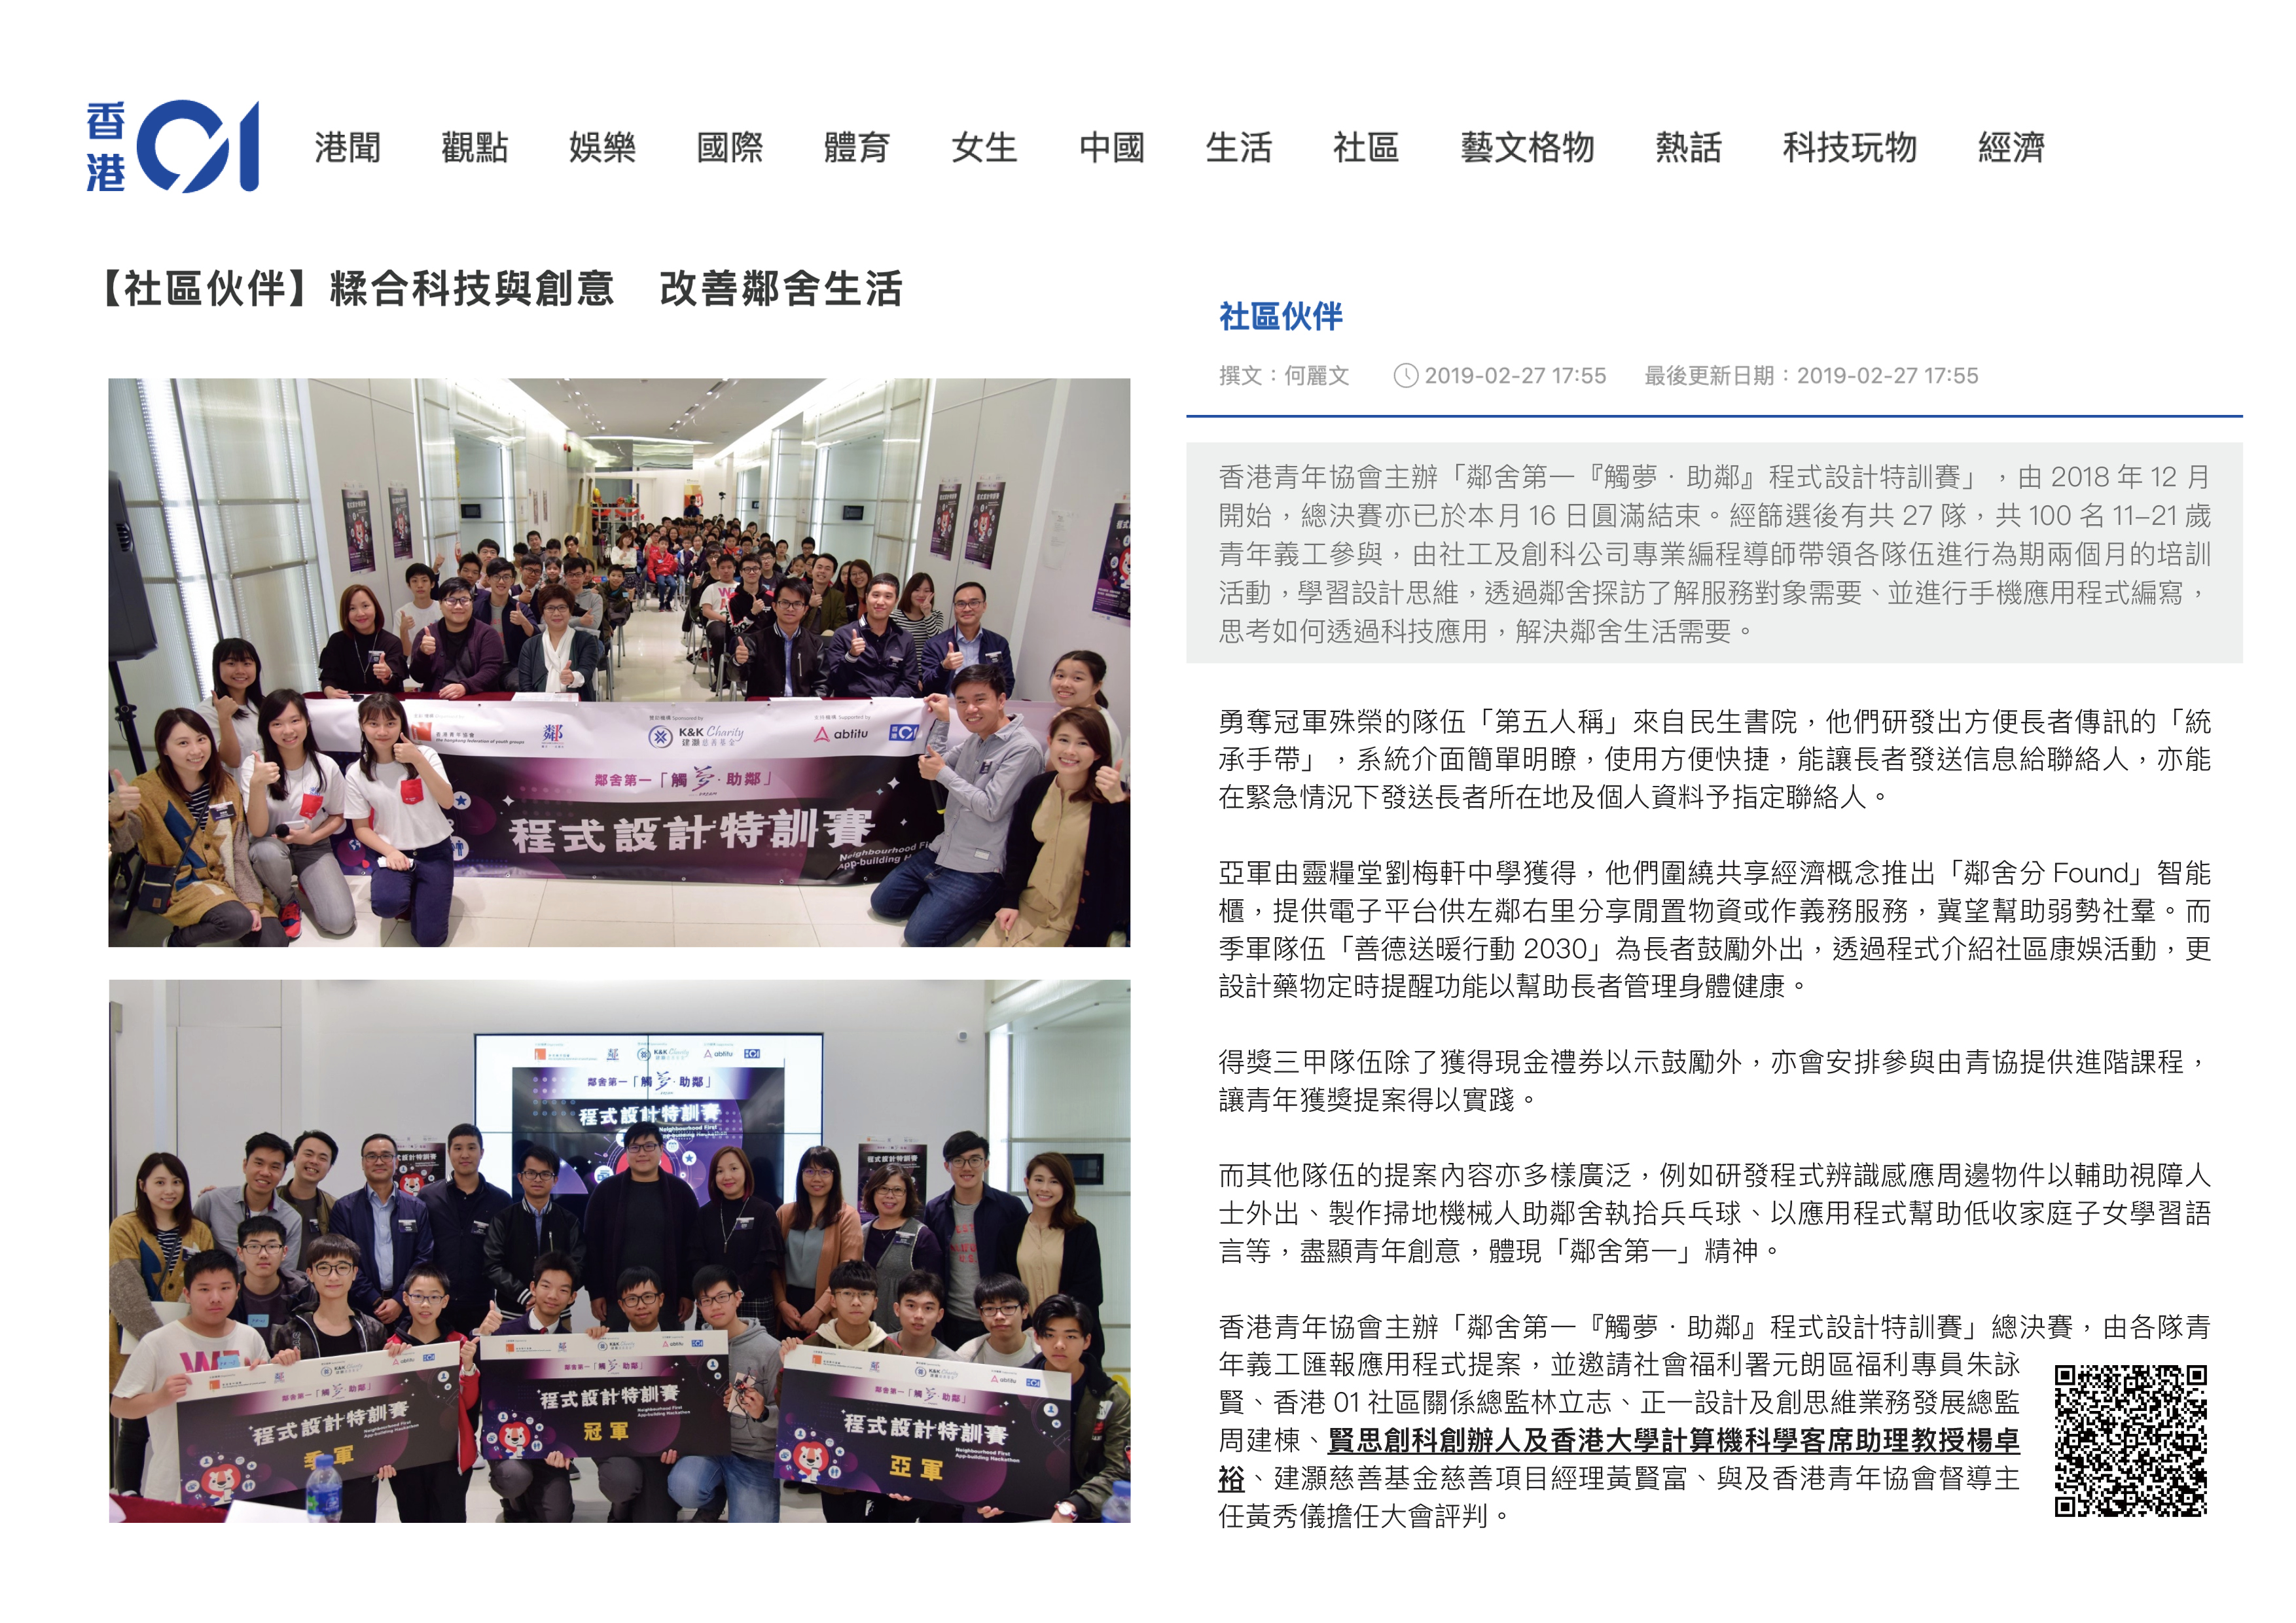 MagiCube Leo Being Judge in HKFYP's app competition reported by HK01